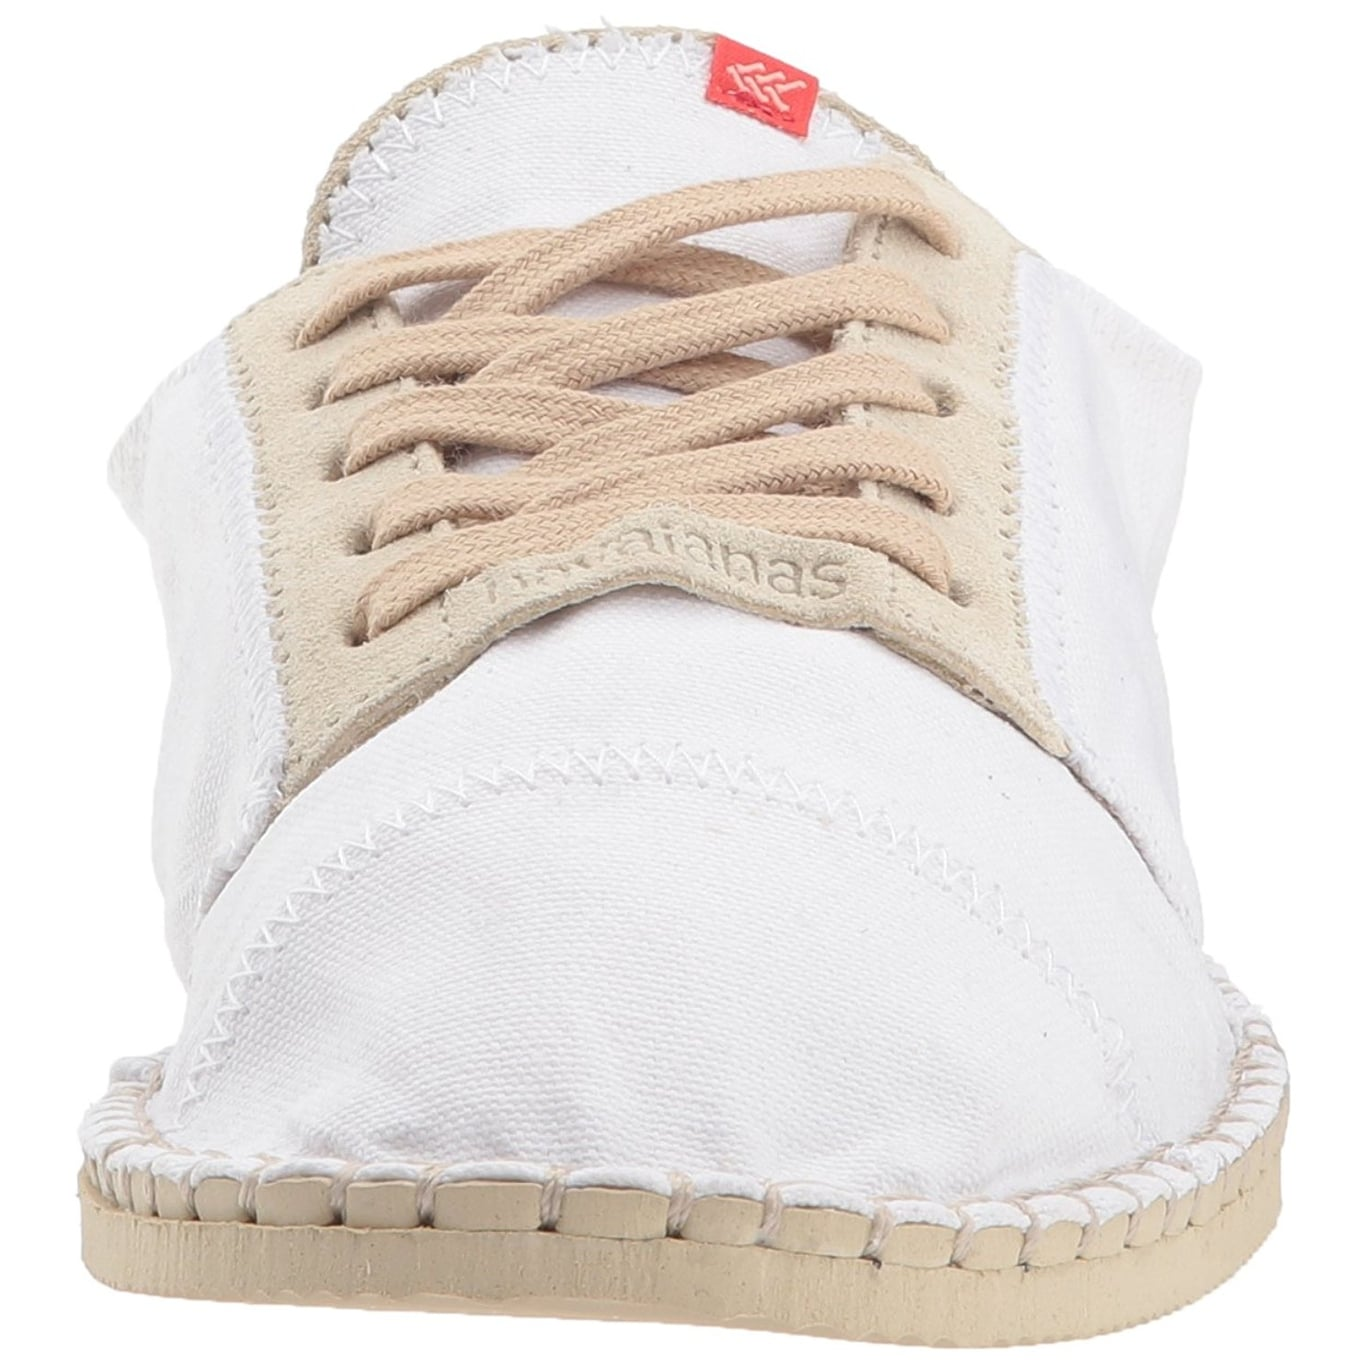 0d110d96e8b4 Shop Havaianas Womens Origine Sneaker III Espadrille Canvas Low Top Lace Up  Fashio... - Free Shipping On Orders Over  45 - Overstock - 21679377